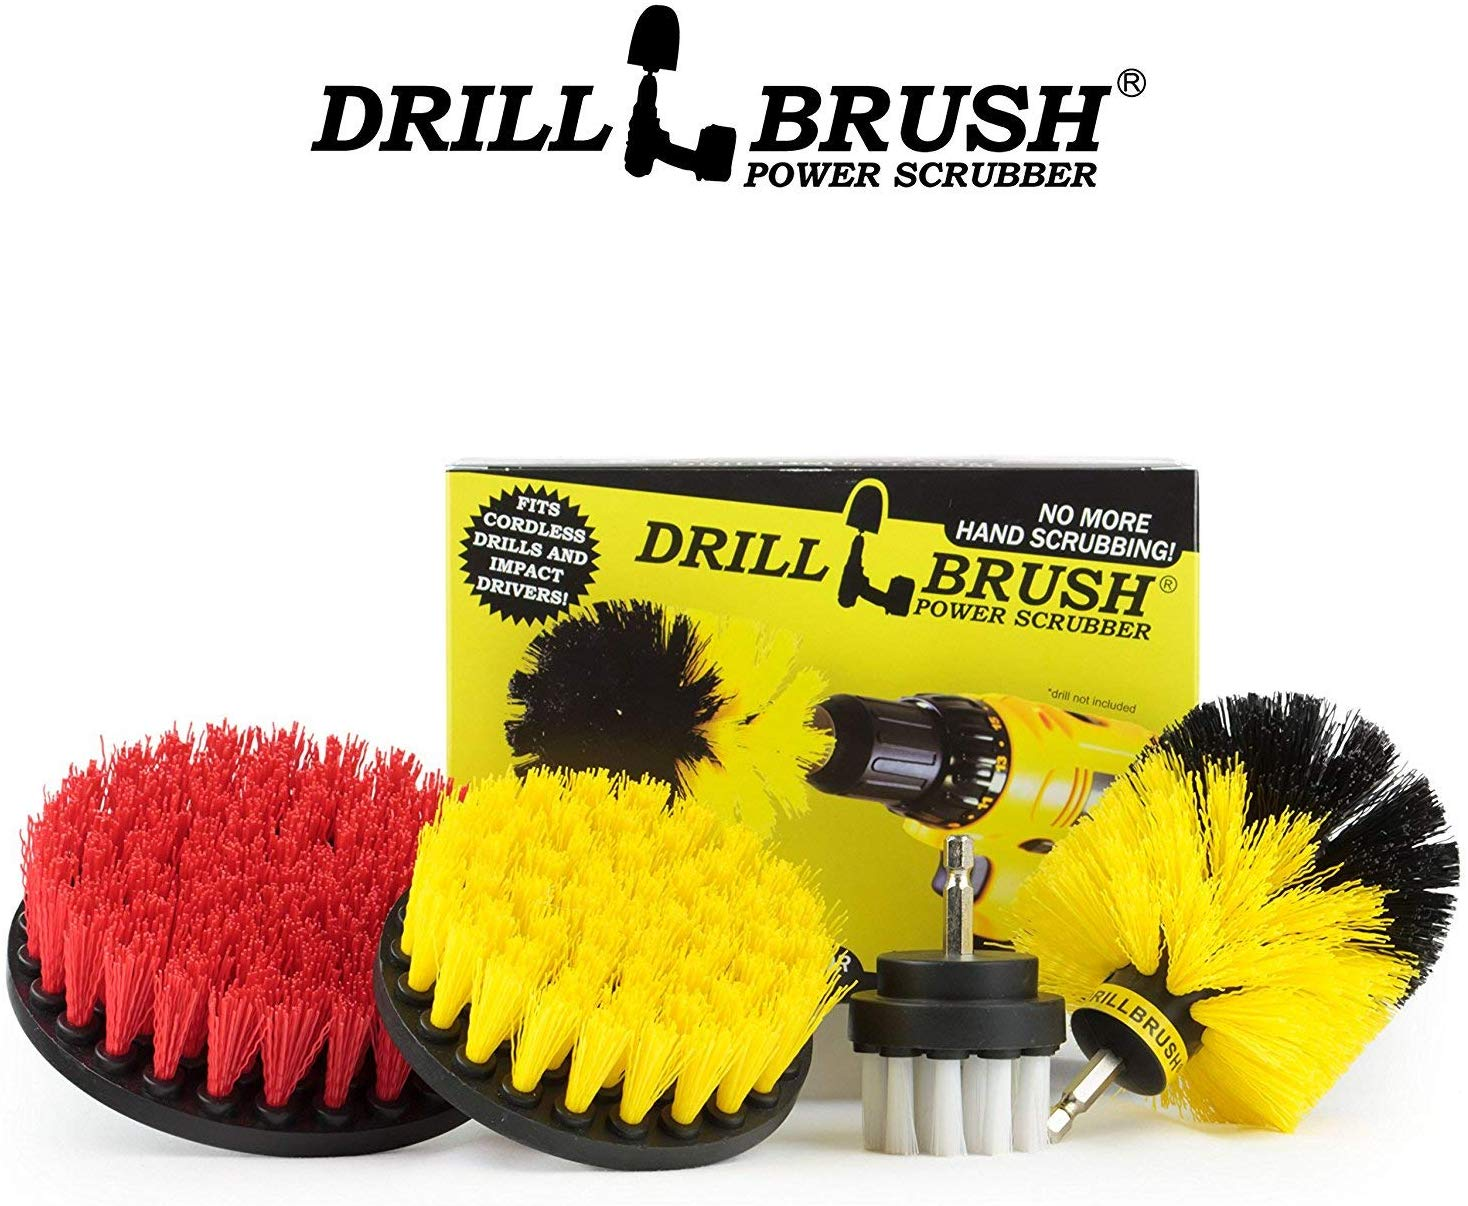 drillbrush scrub brush drill attachment kit drill powered cleaning brush attachments time saving cleaning kit great for cleaning pool tile